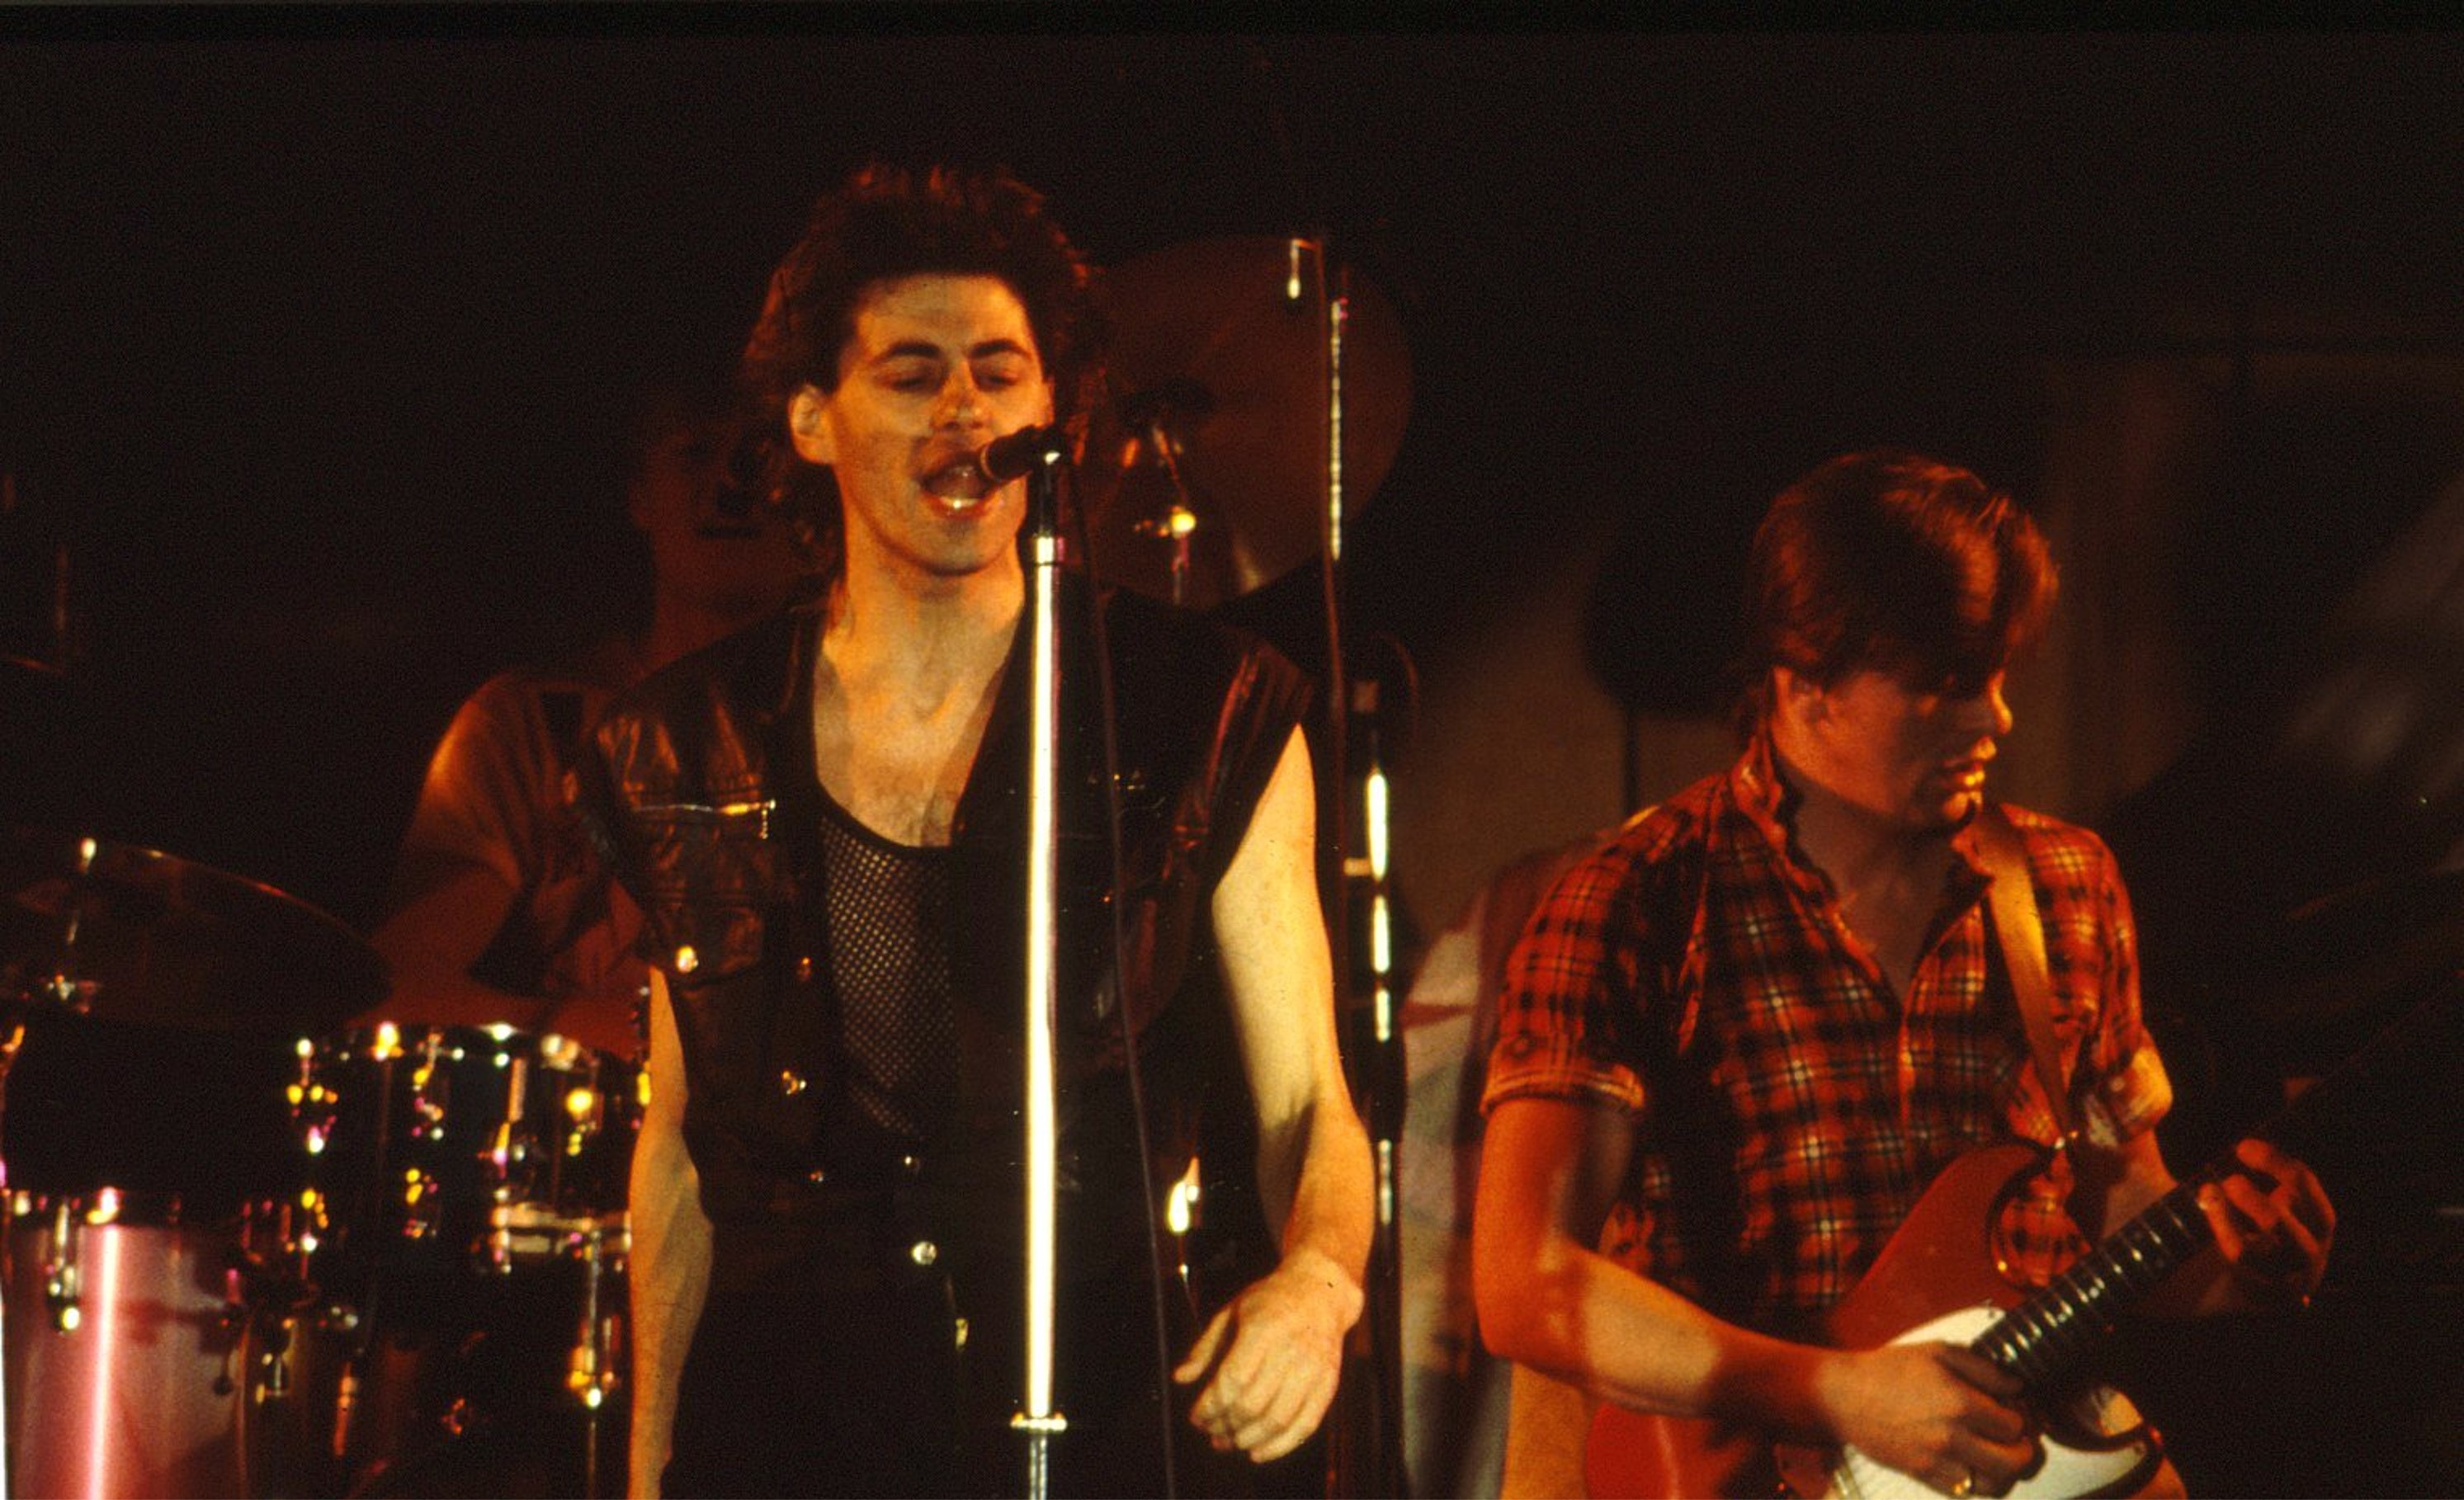 The Boomtown rats at uea in 1982